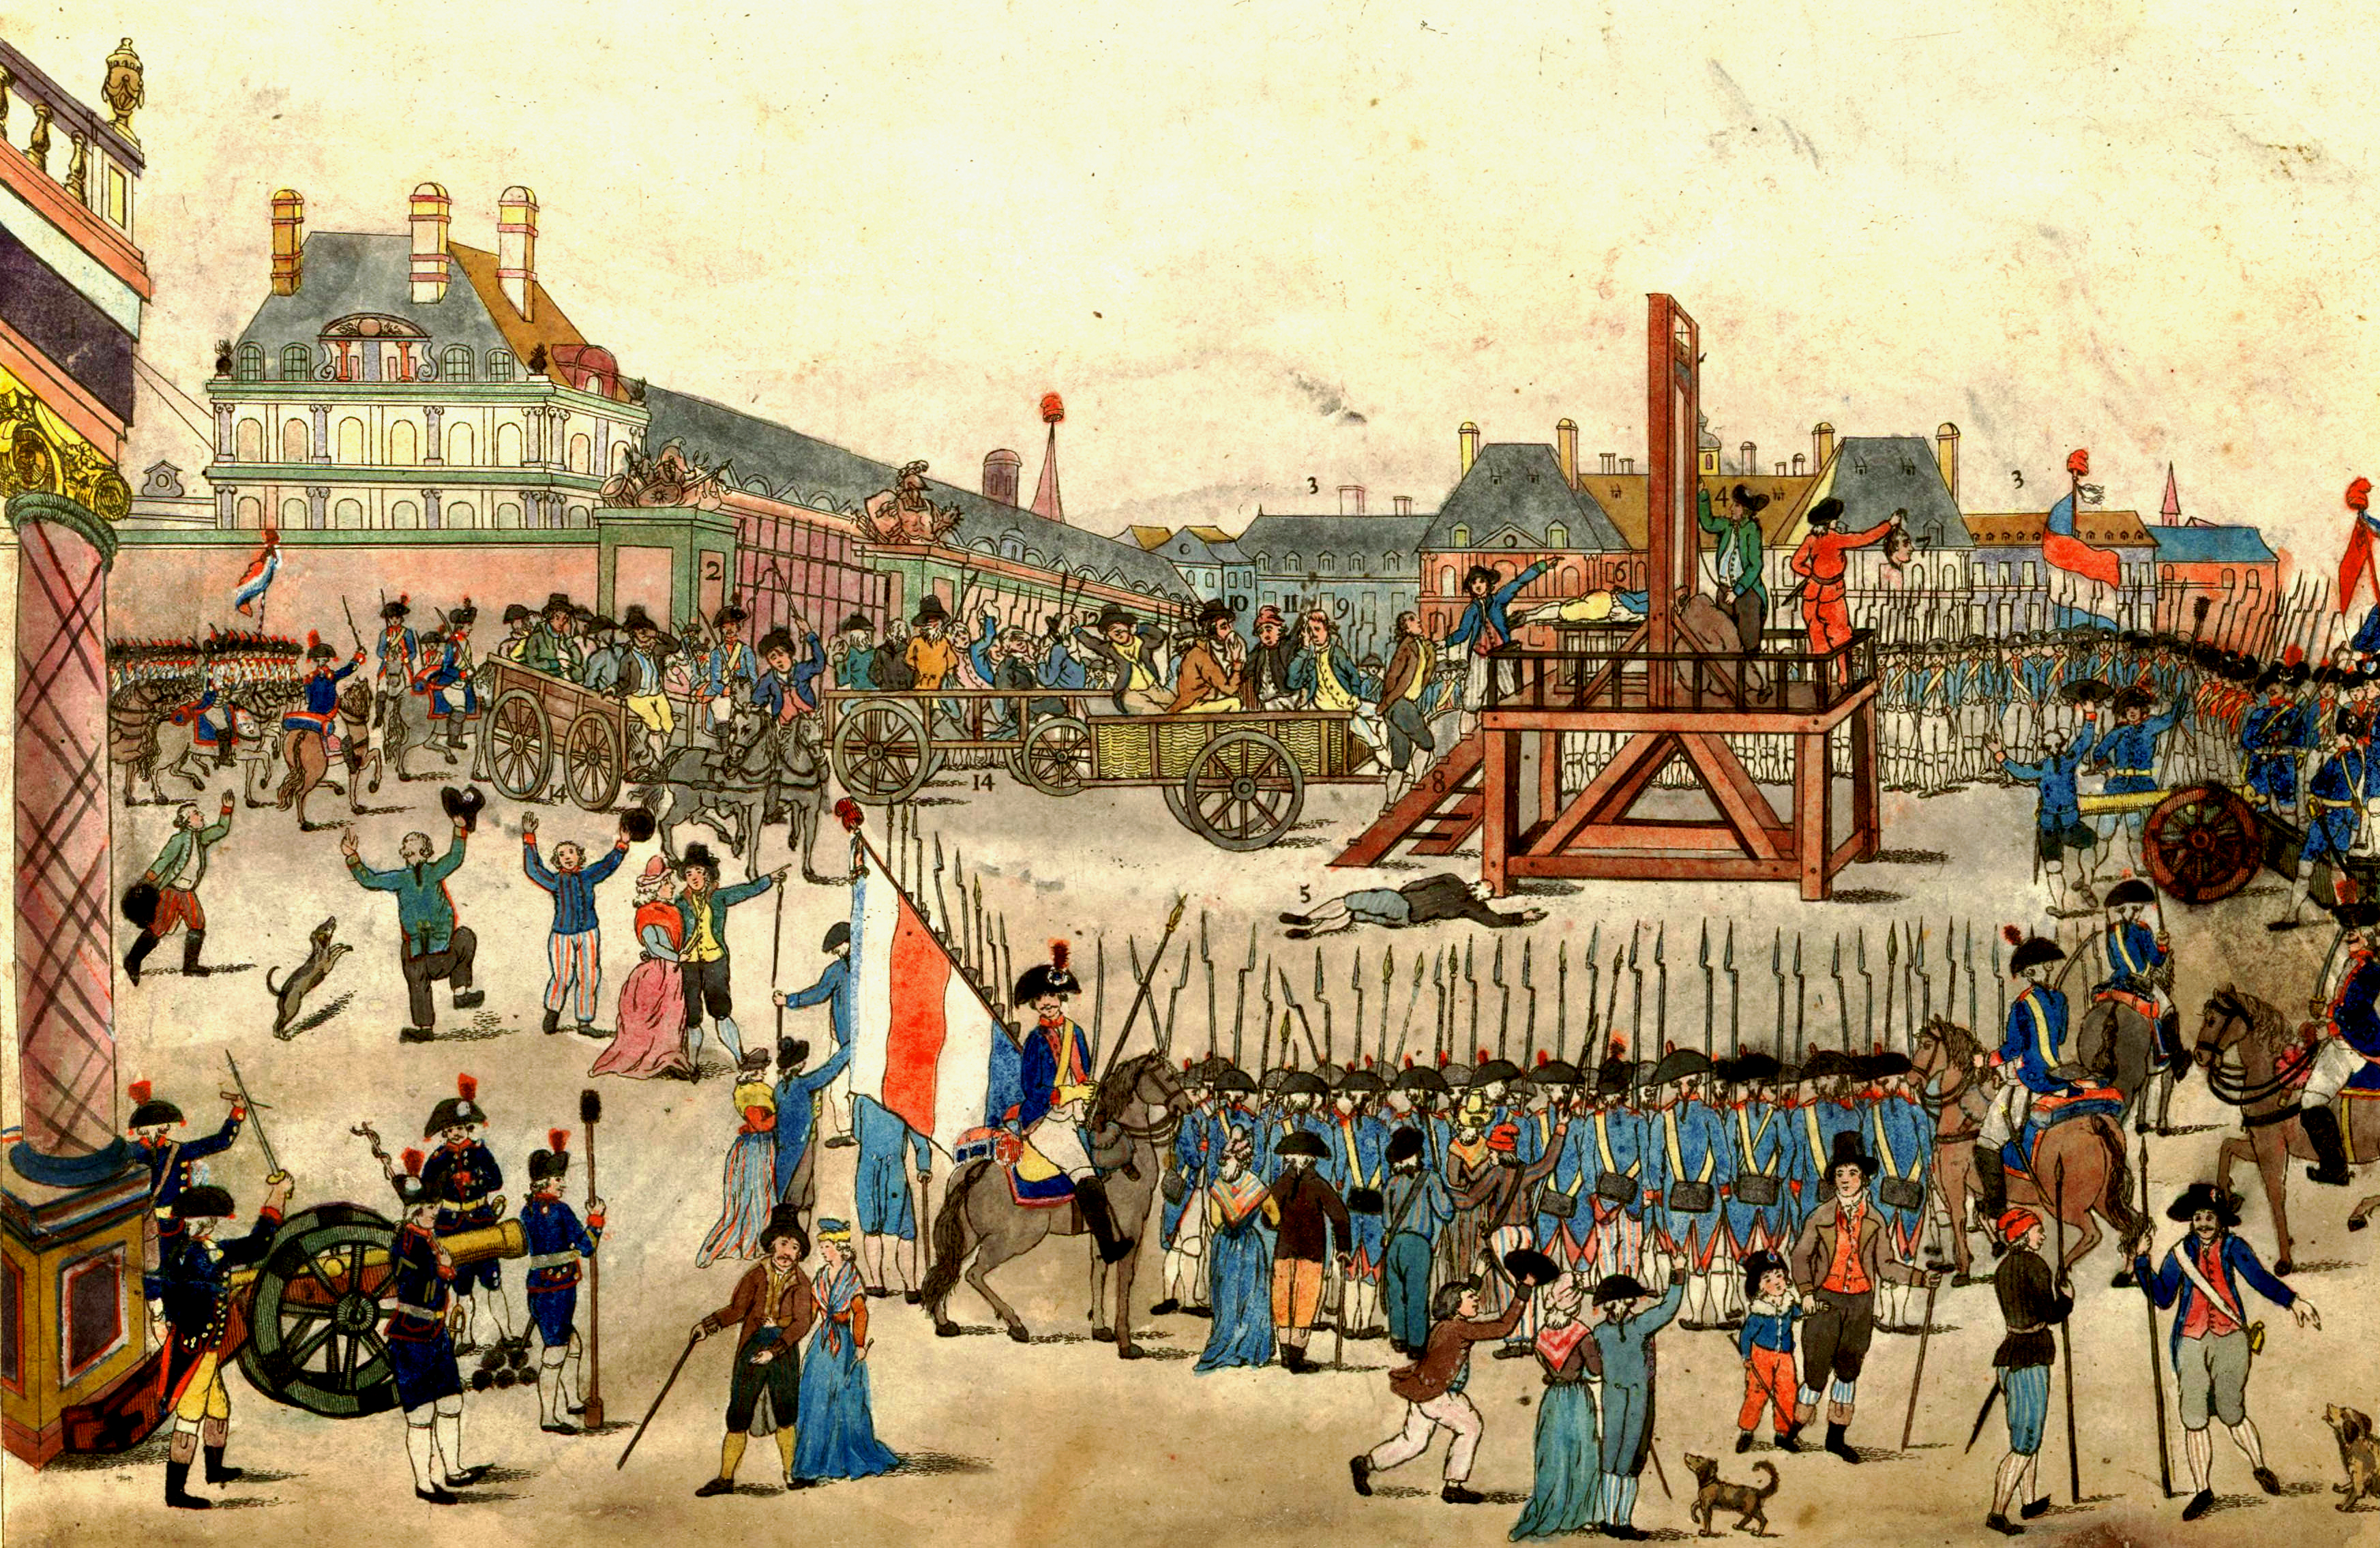 The execution of Robespierre on July 28 The execution of Robespierre on July 28, 1794.